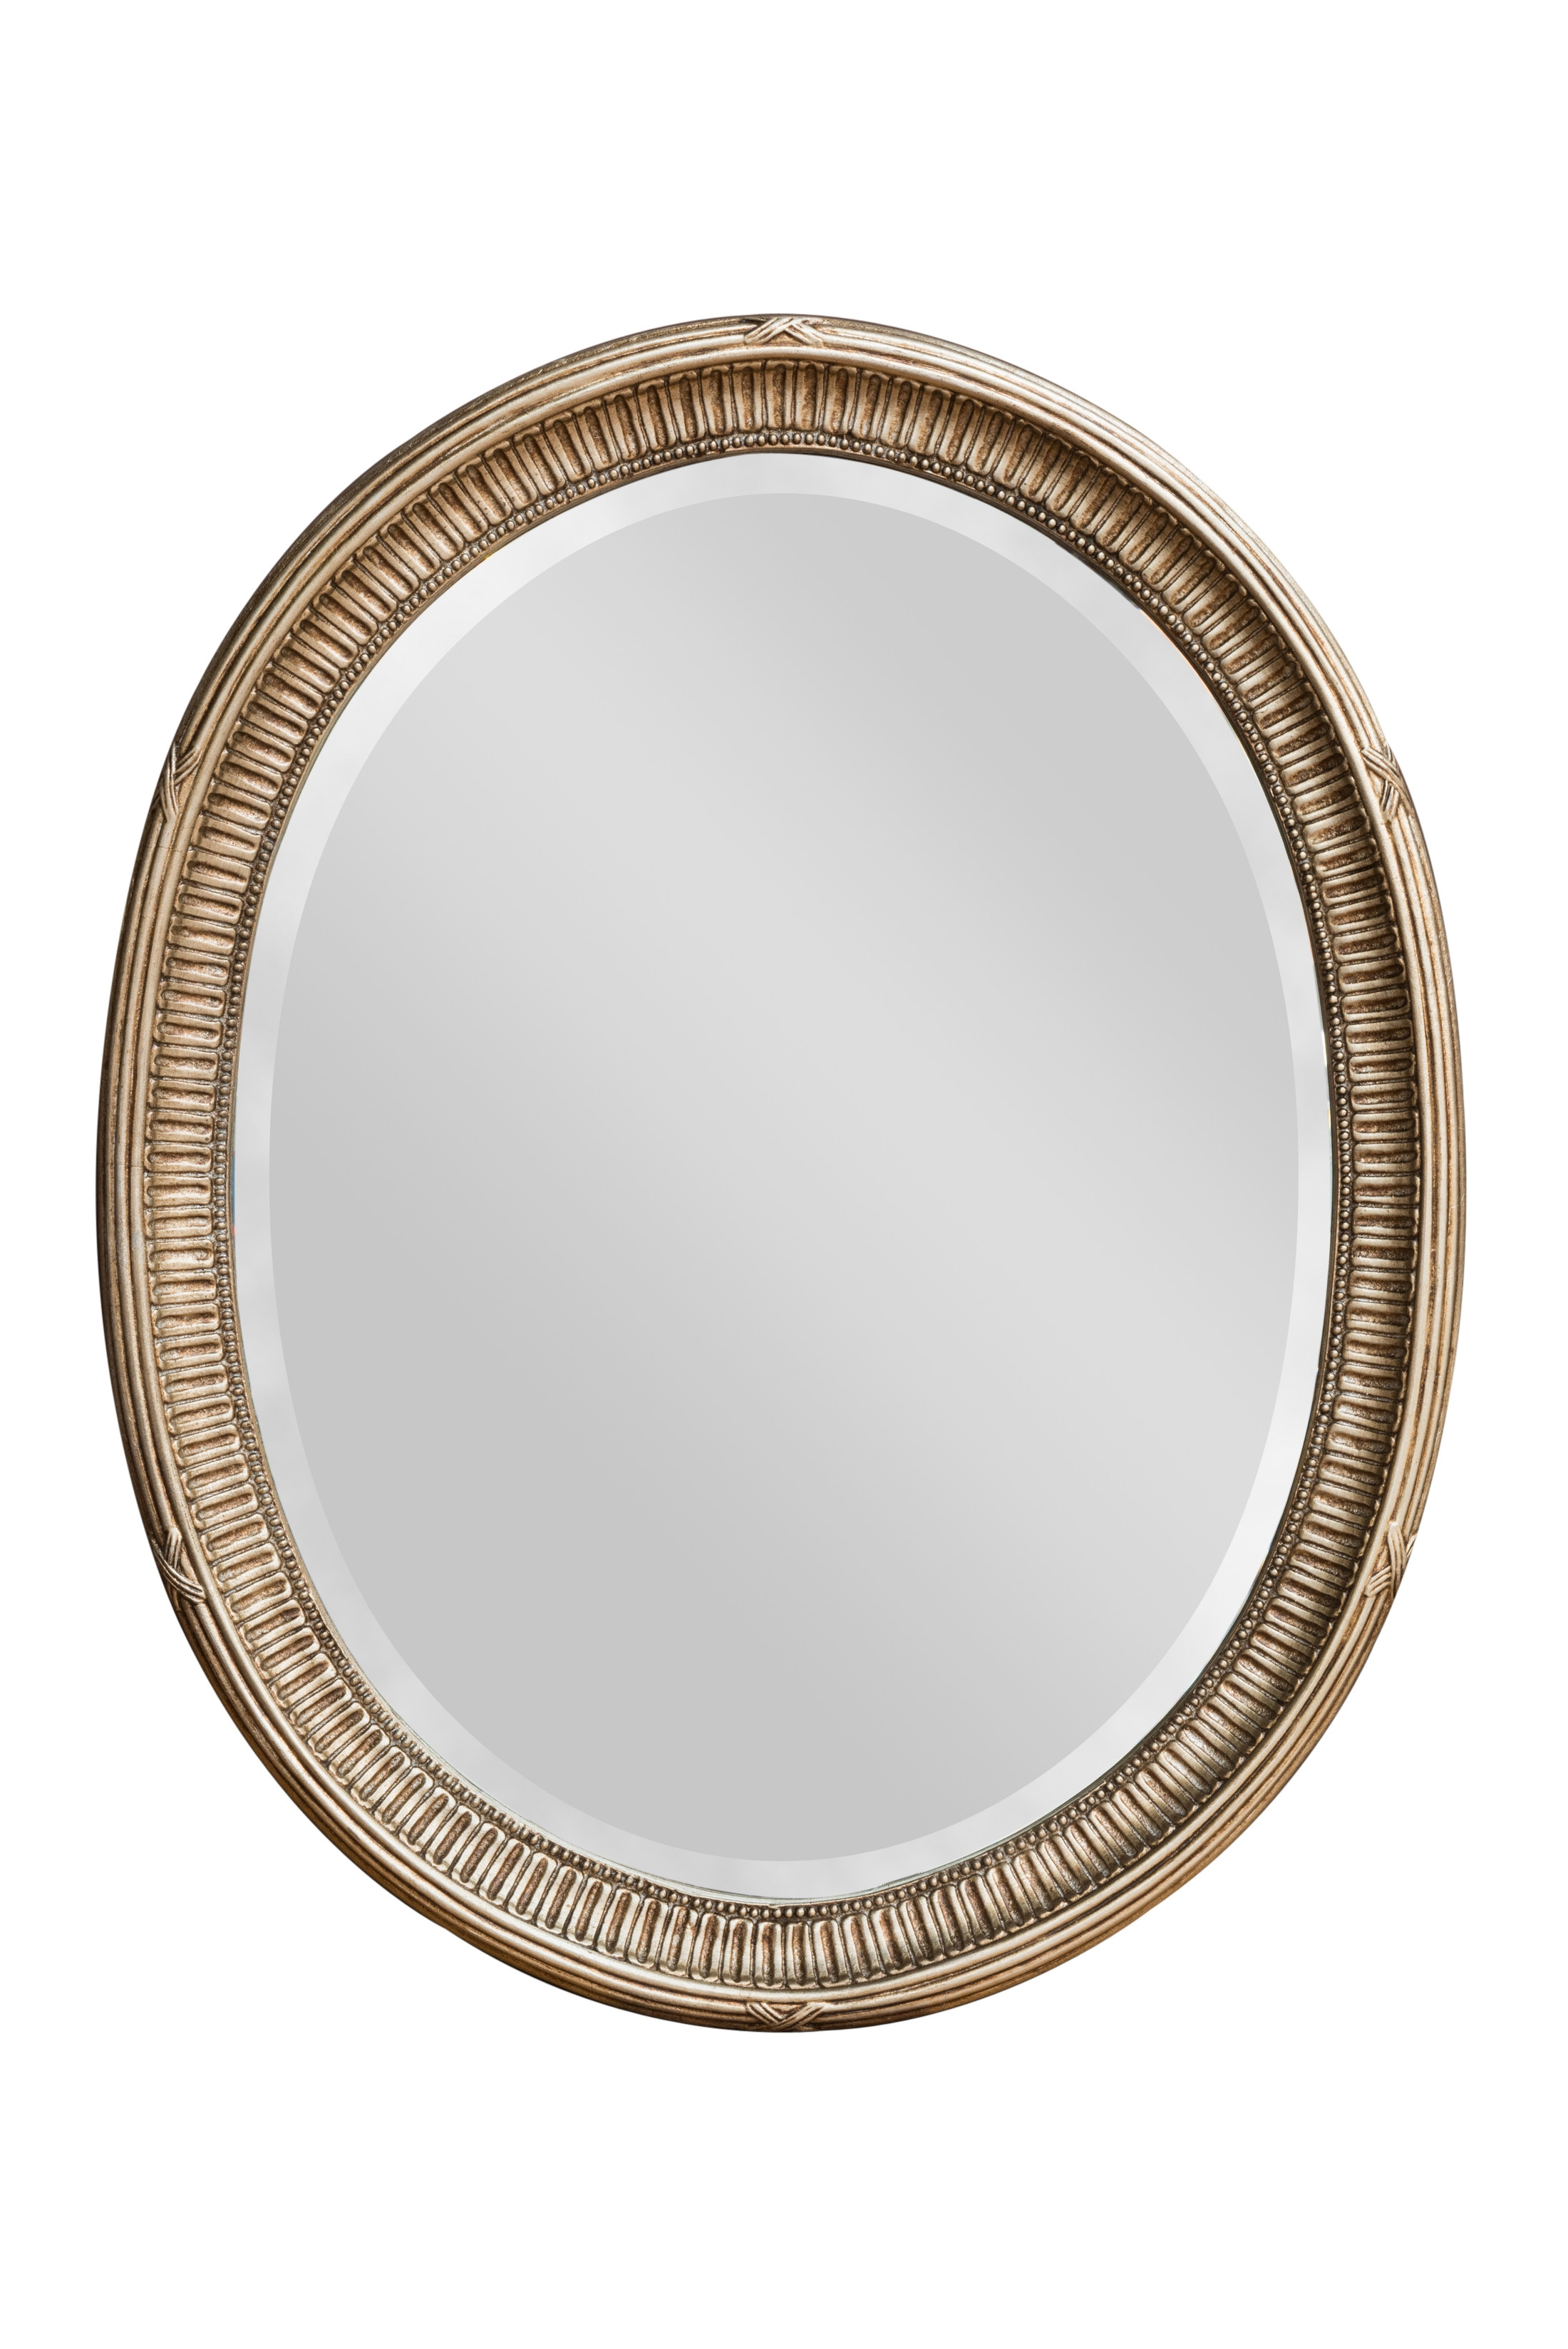 Adam Silver Oval Mirror Bedroom Mirrors For Sale Panfili For Silver Oval Mirror (Image 1 of 15)